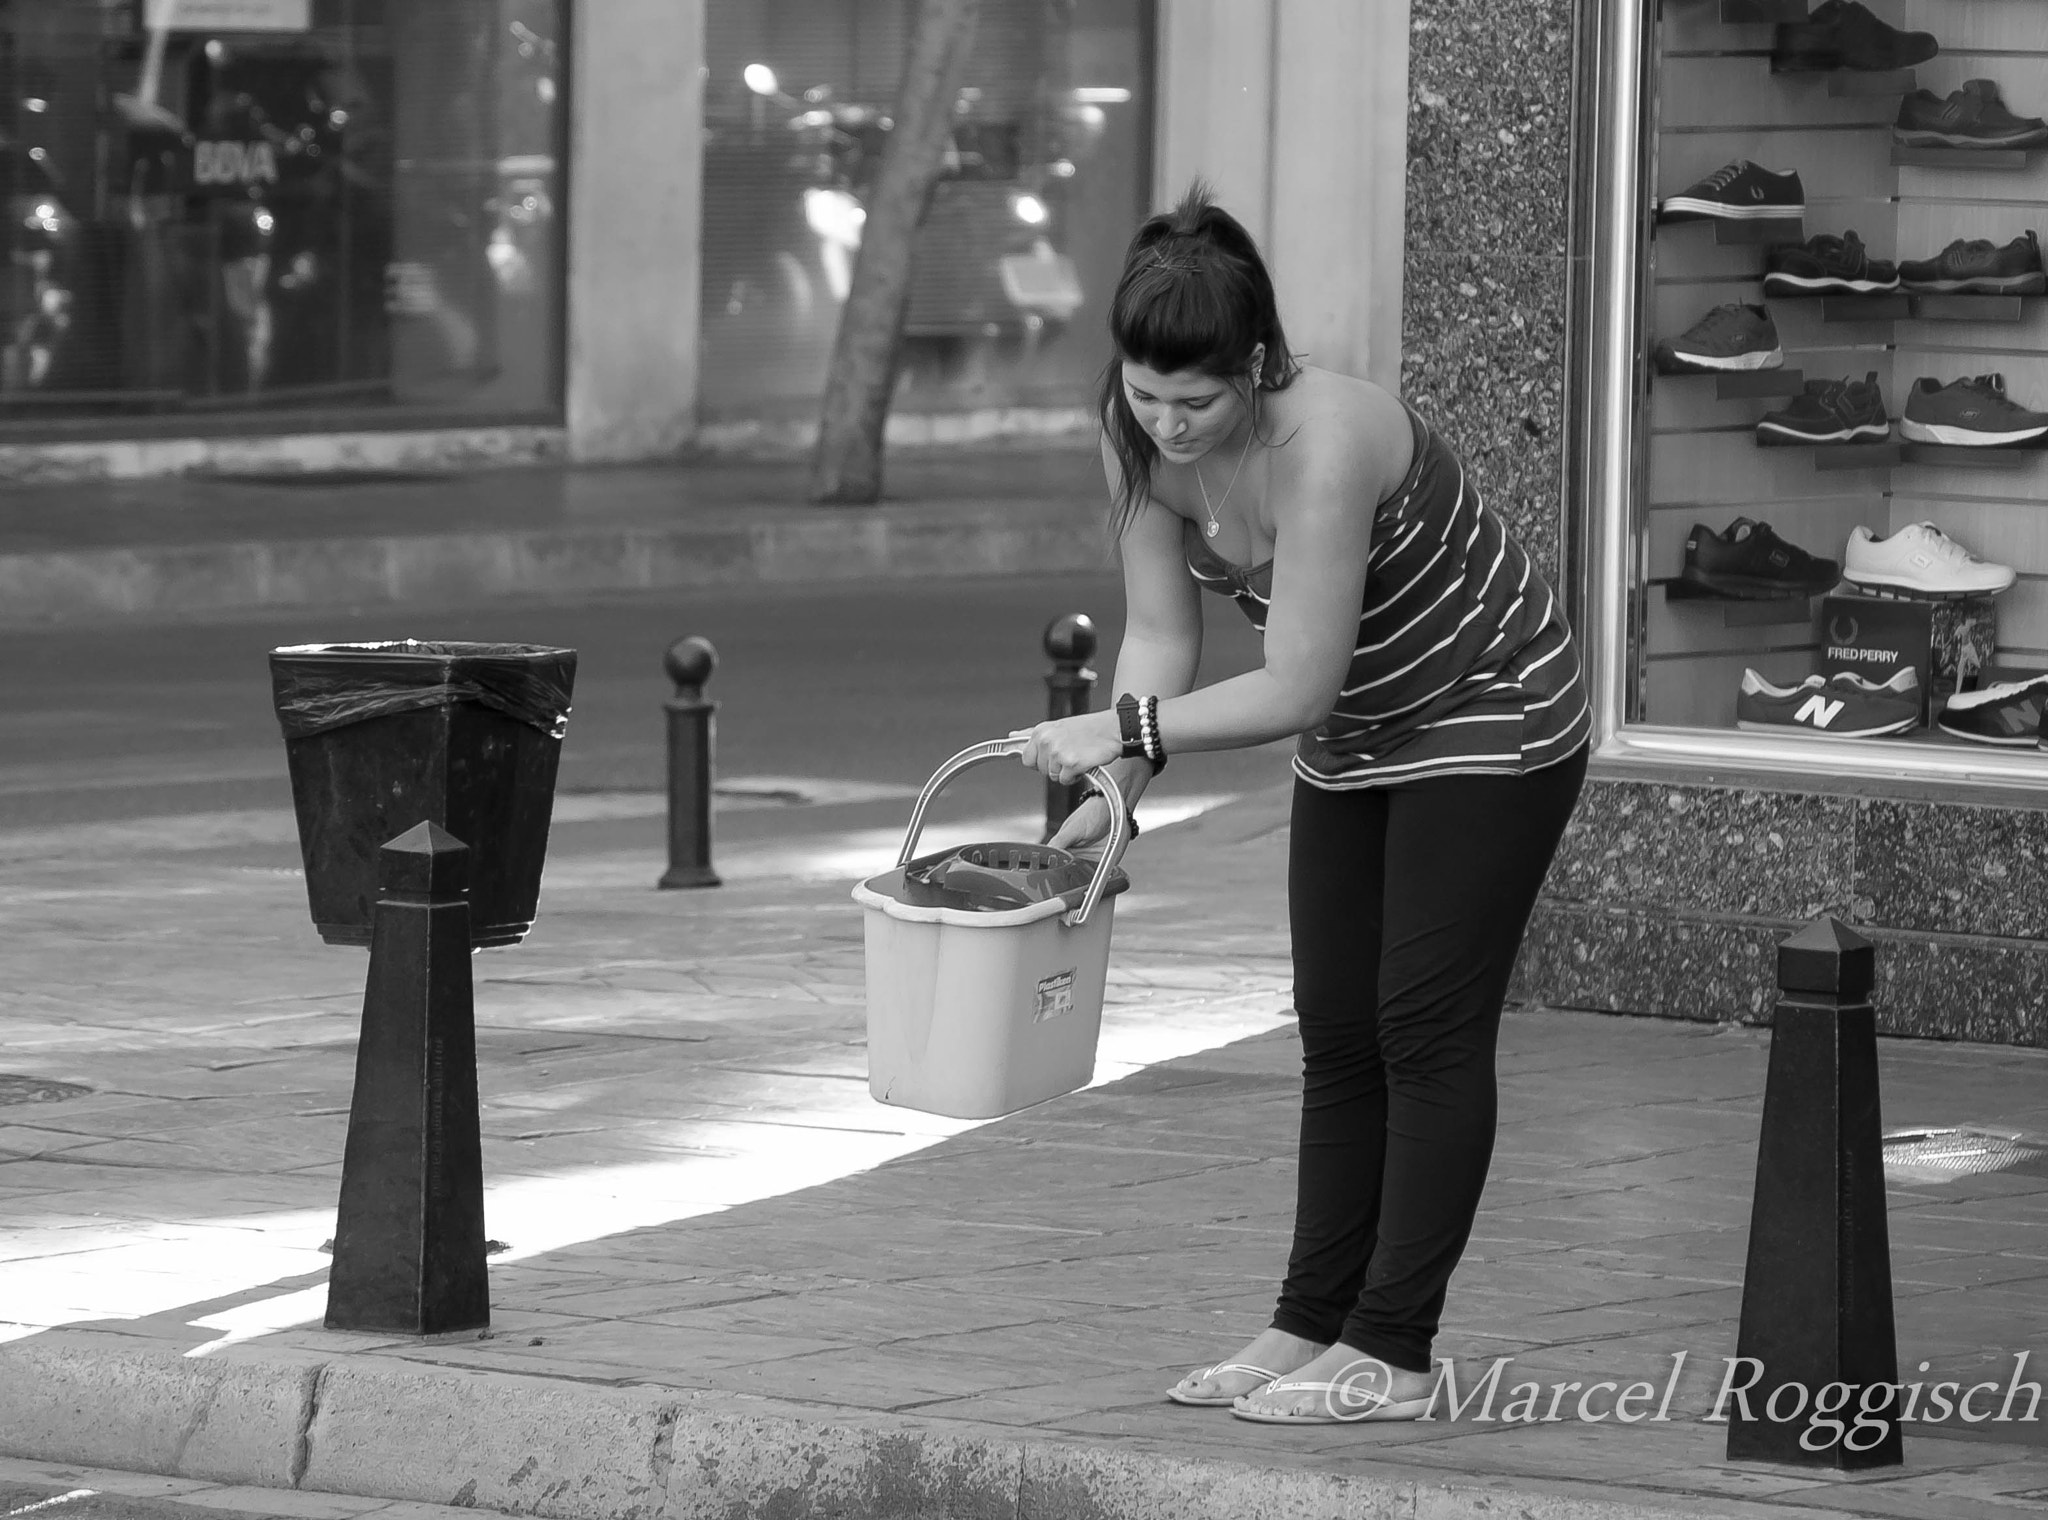 Photograph The Bucket Girl by Marcel  Roggisch on 500px